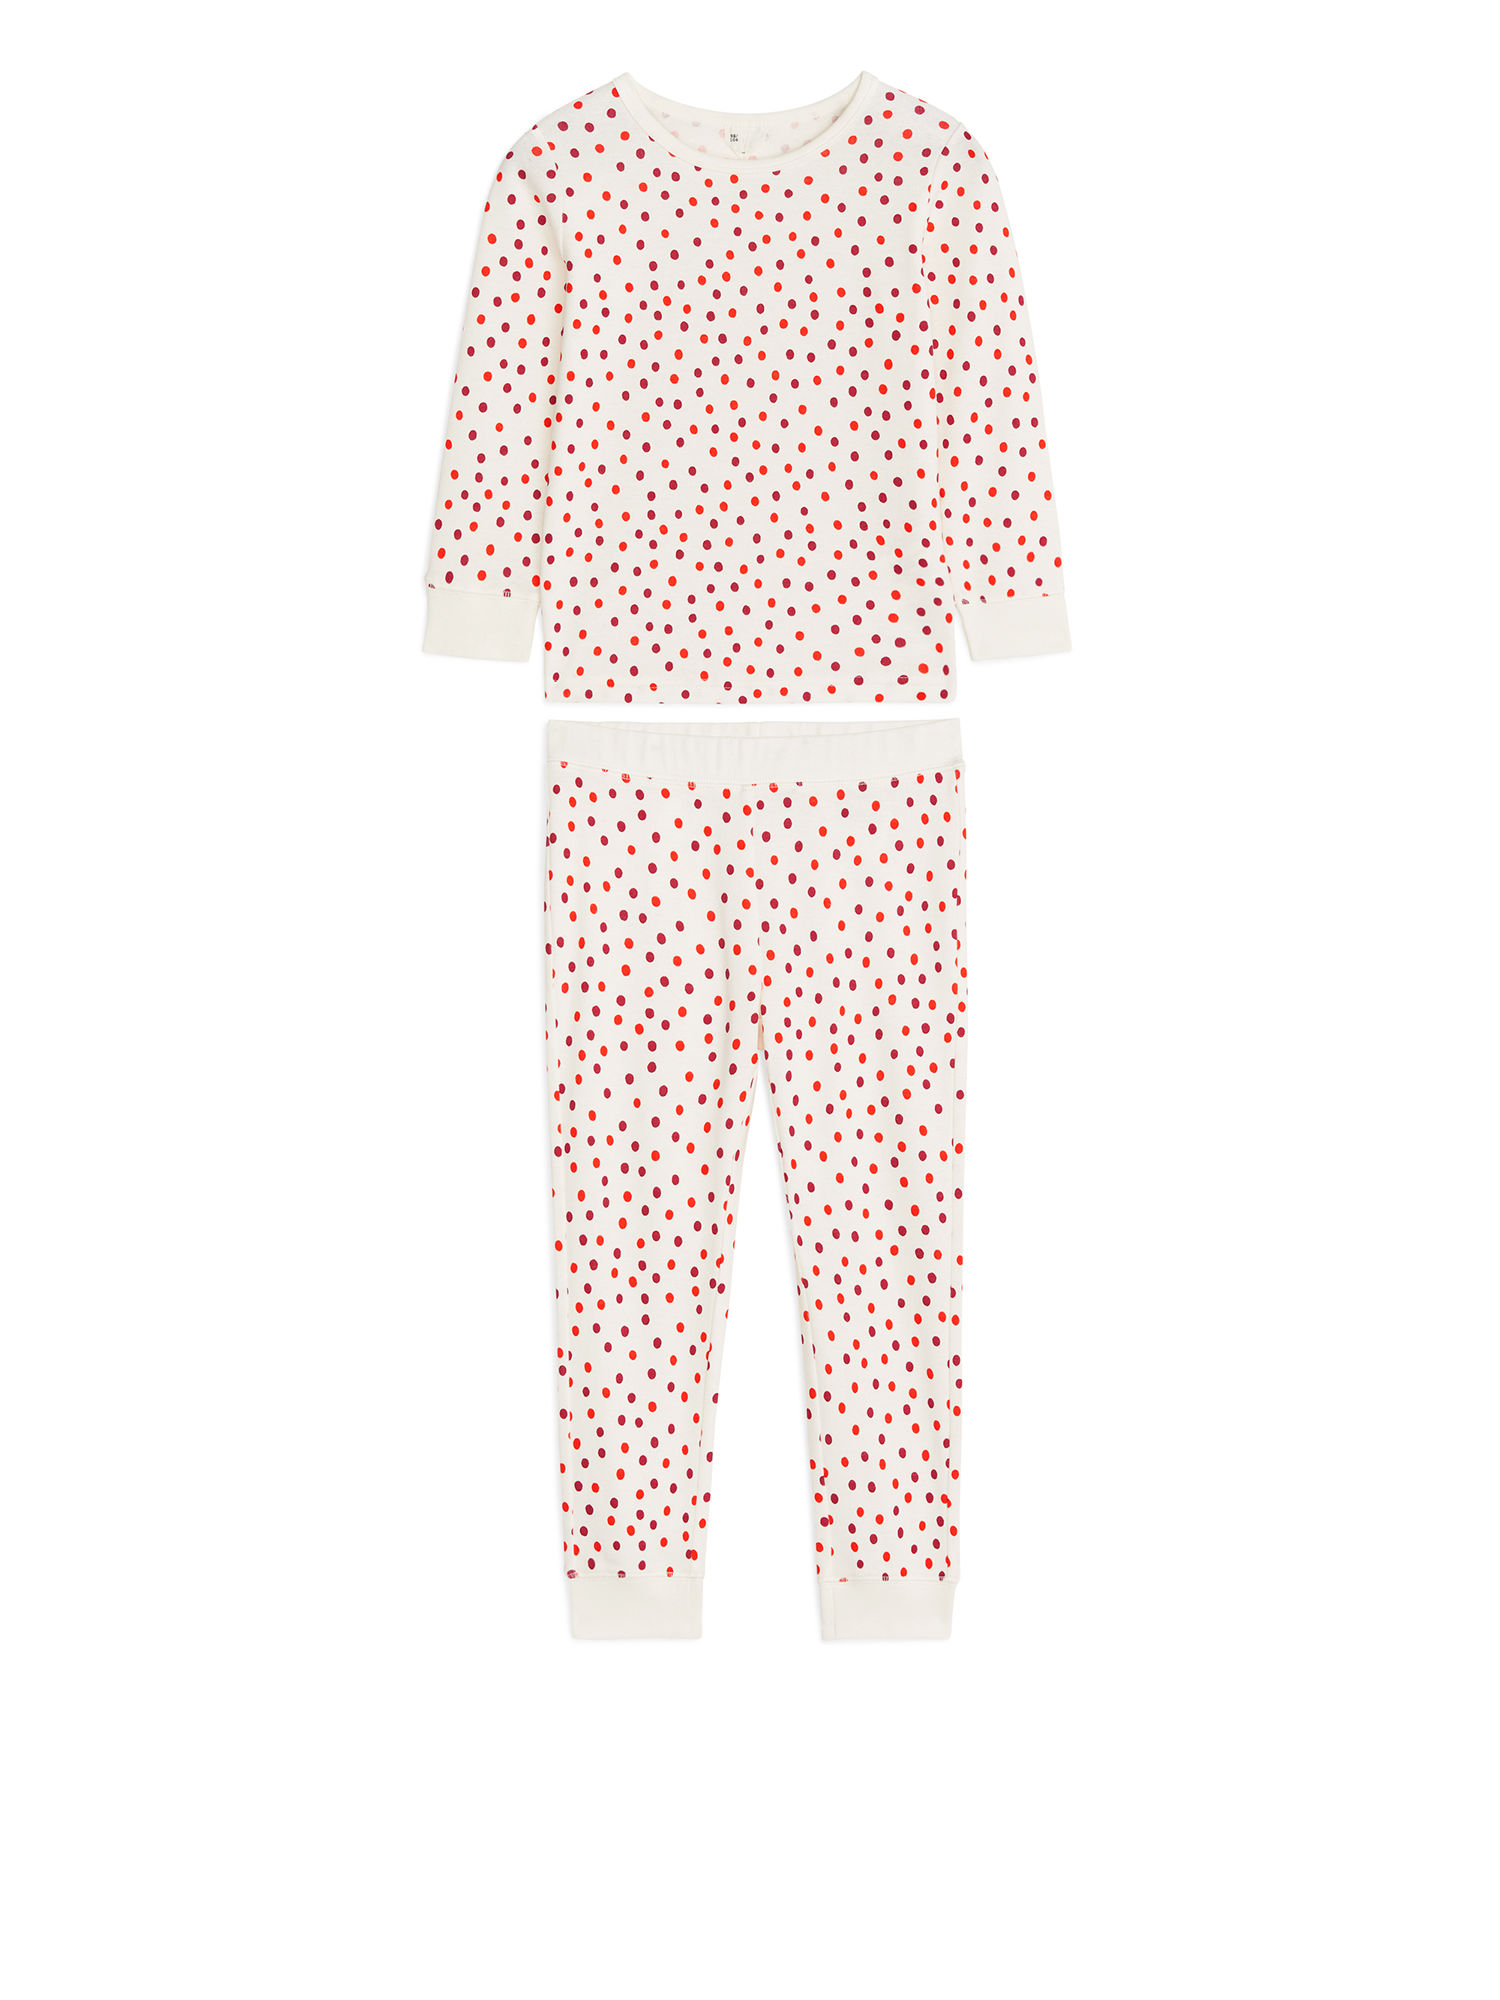 Fabric Swatch image of Arket cotton jersey pyjama set in pink